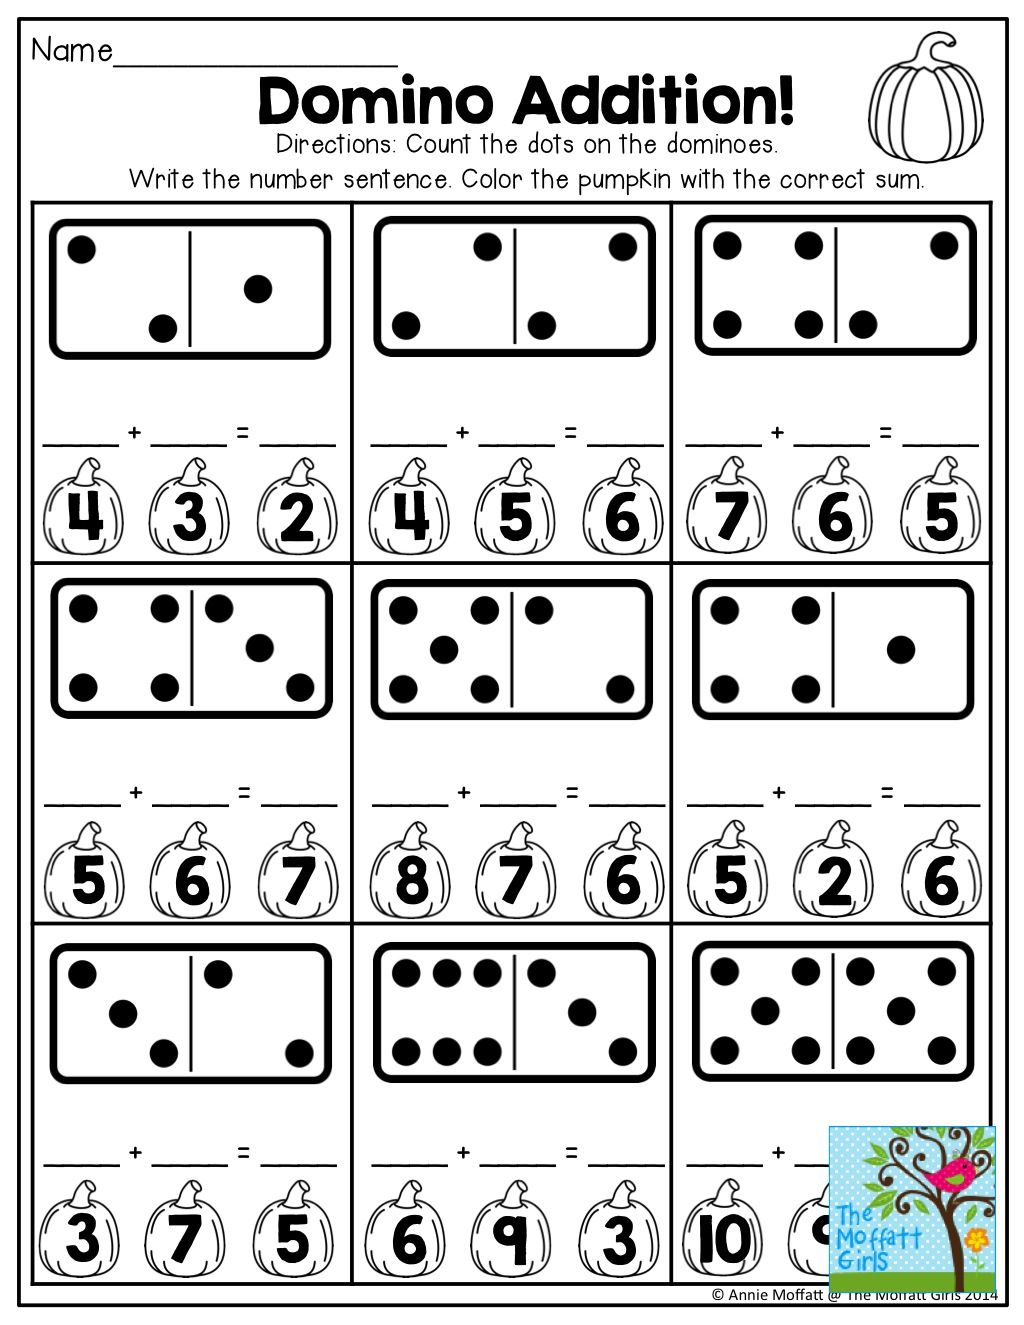 Domino Addition And Tons Of Other Fun Printables